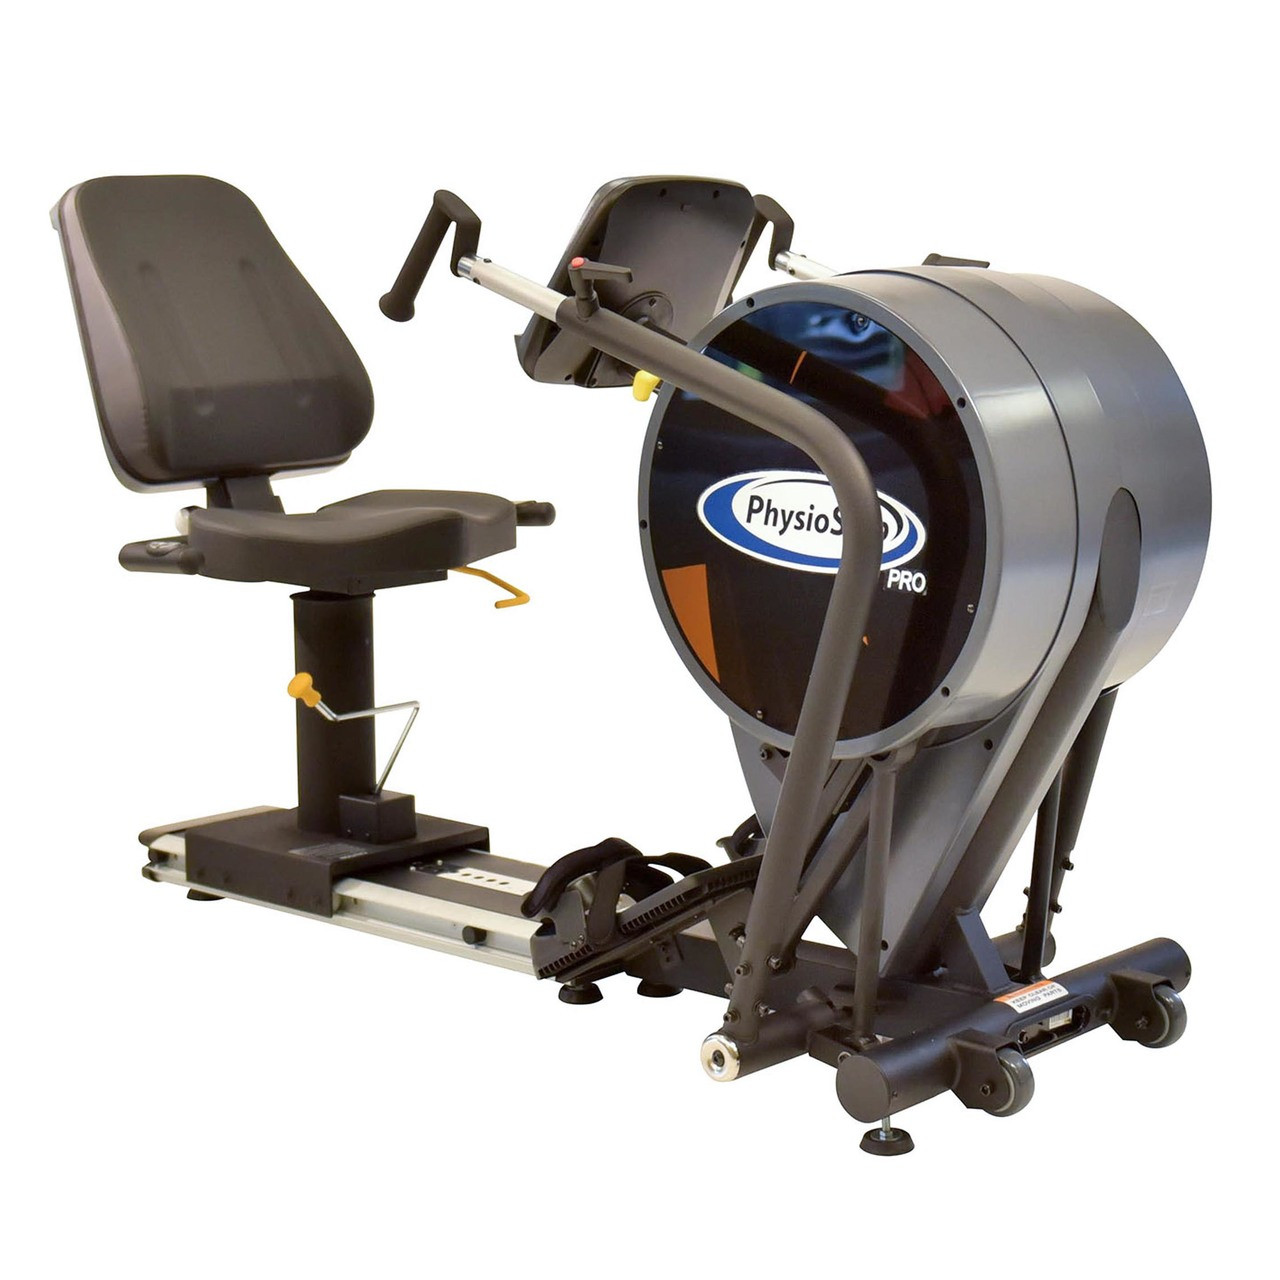 PhysioStep PRO Adaptive Recumbent Stepper Cross Trainer